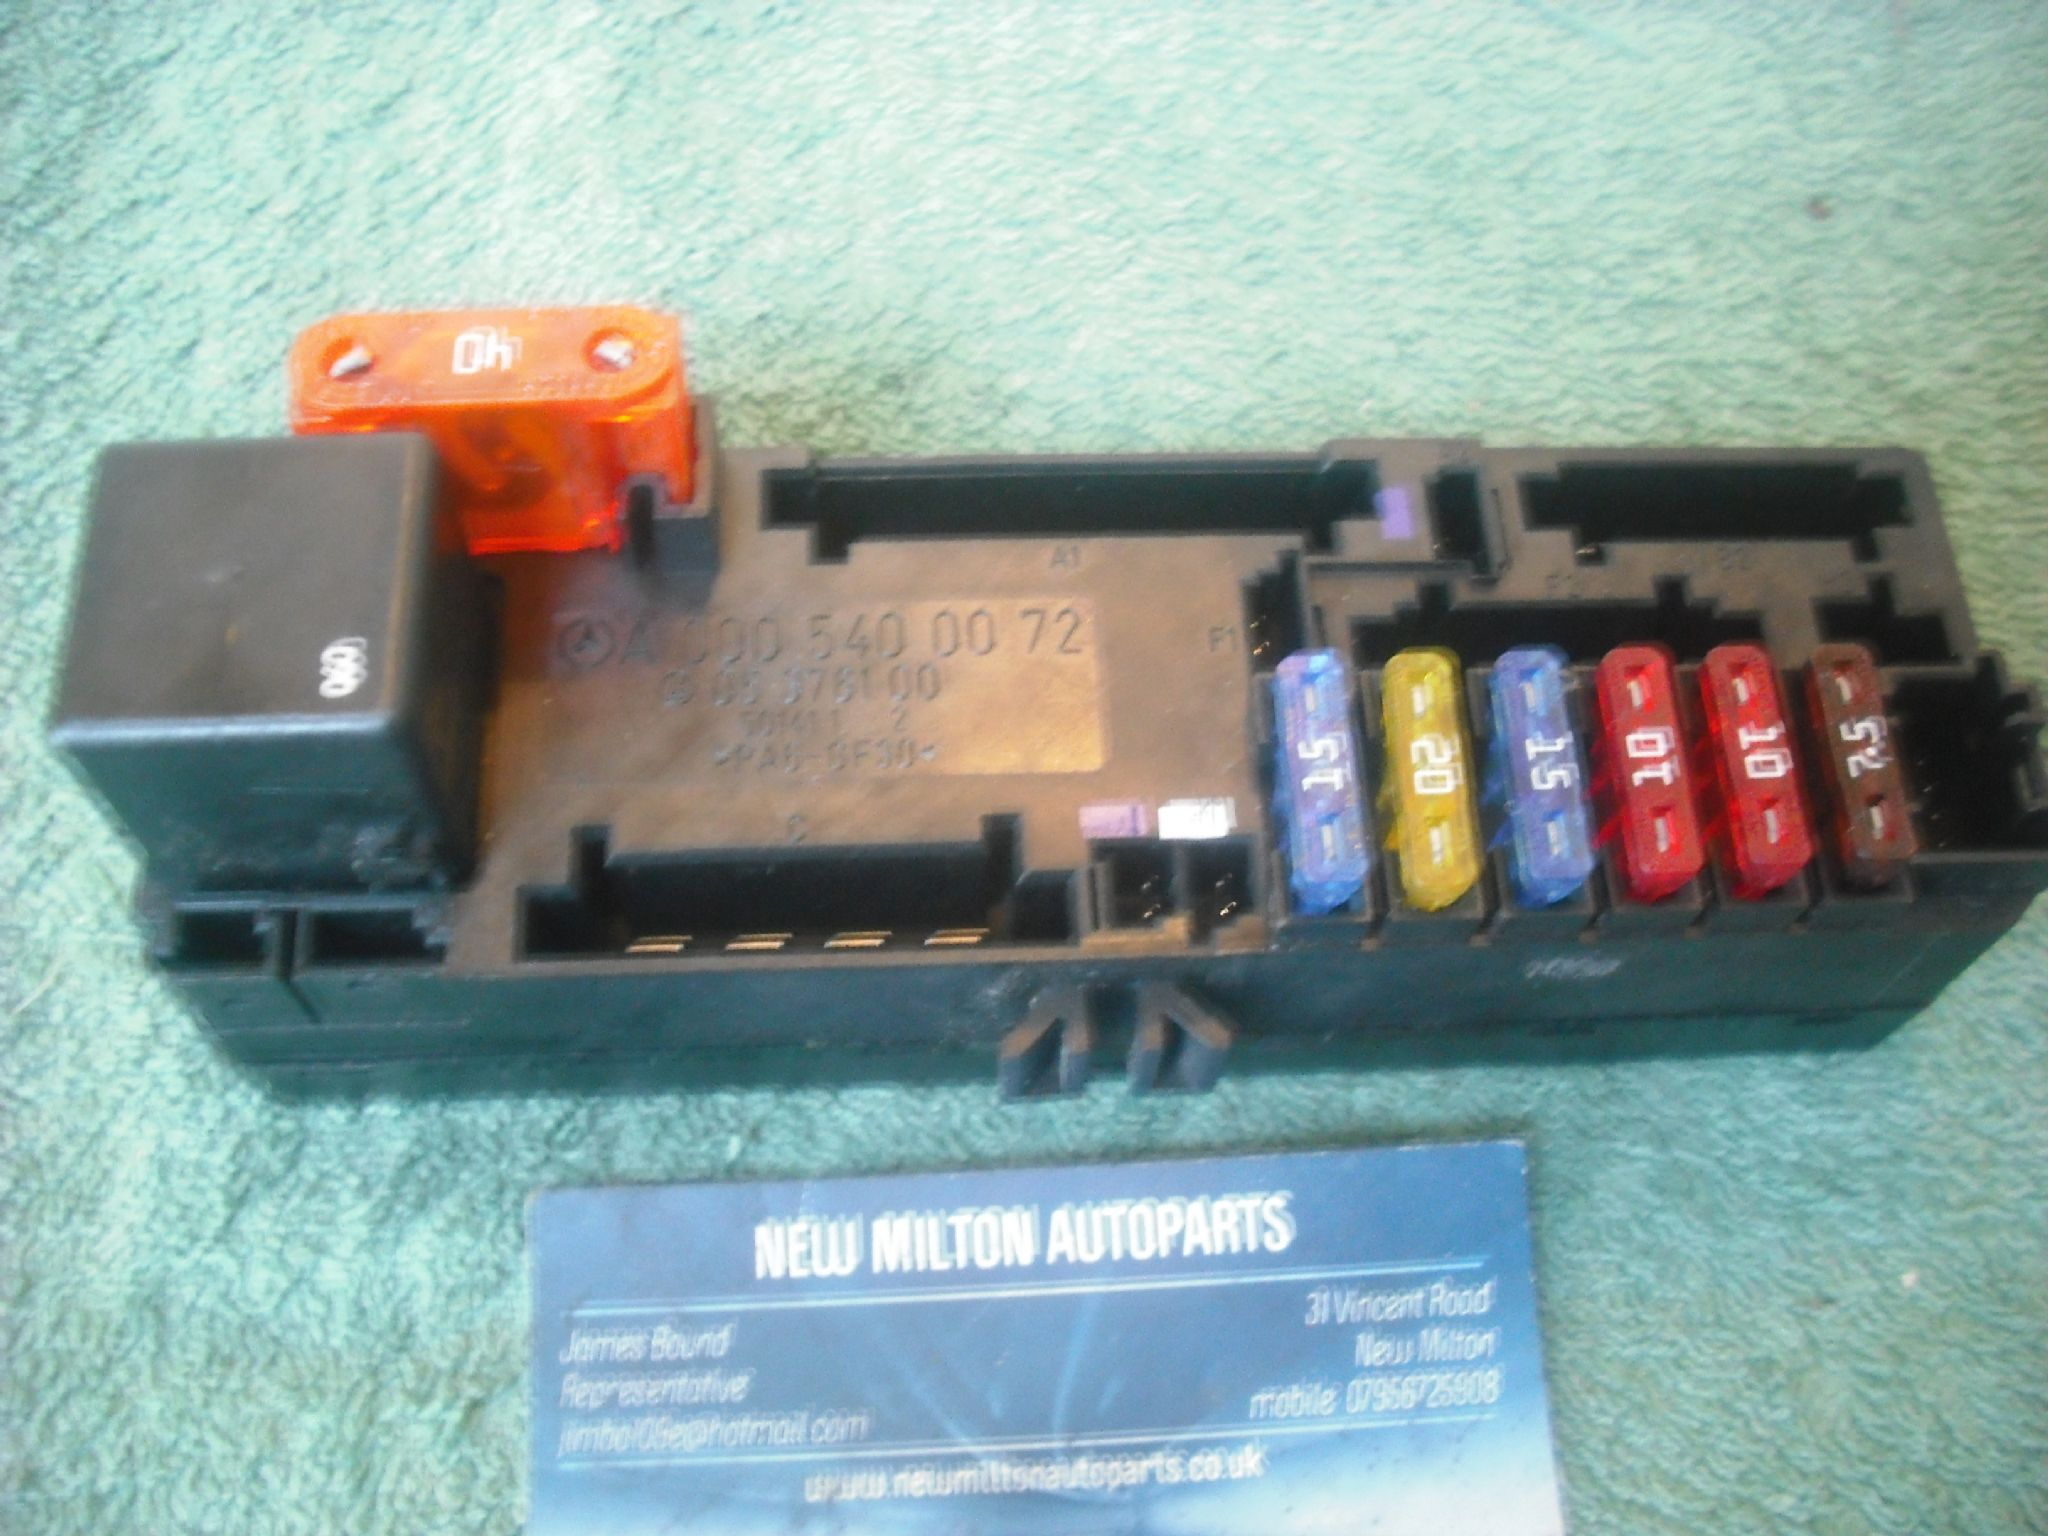 Mercedes W202 C Class Fuse Box Overload Relay Module A 000 Relays 540 03 72